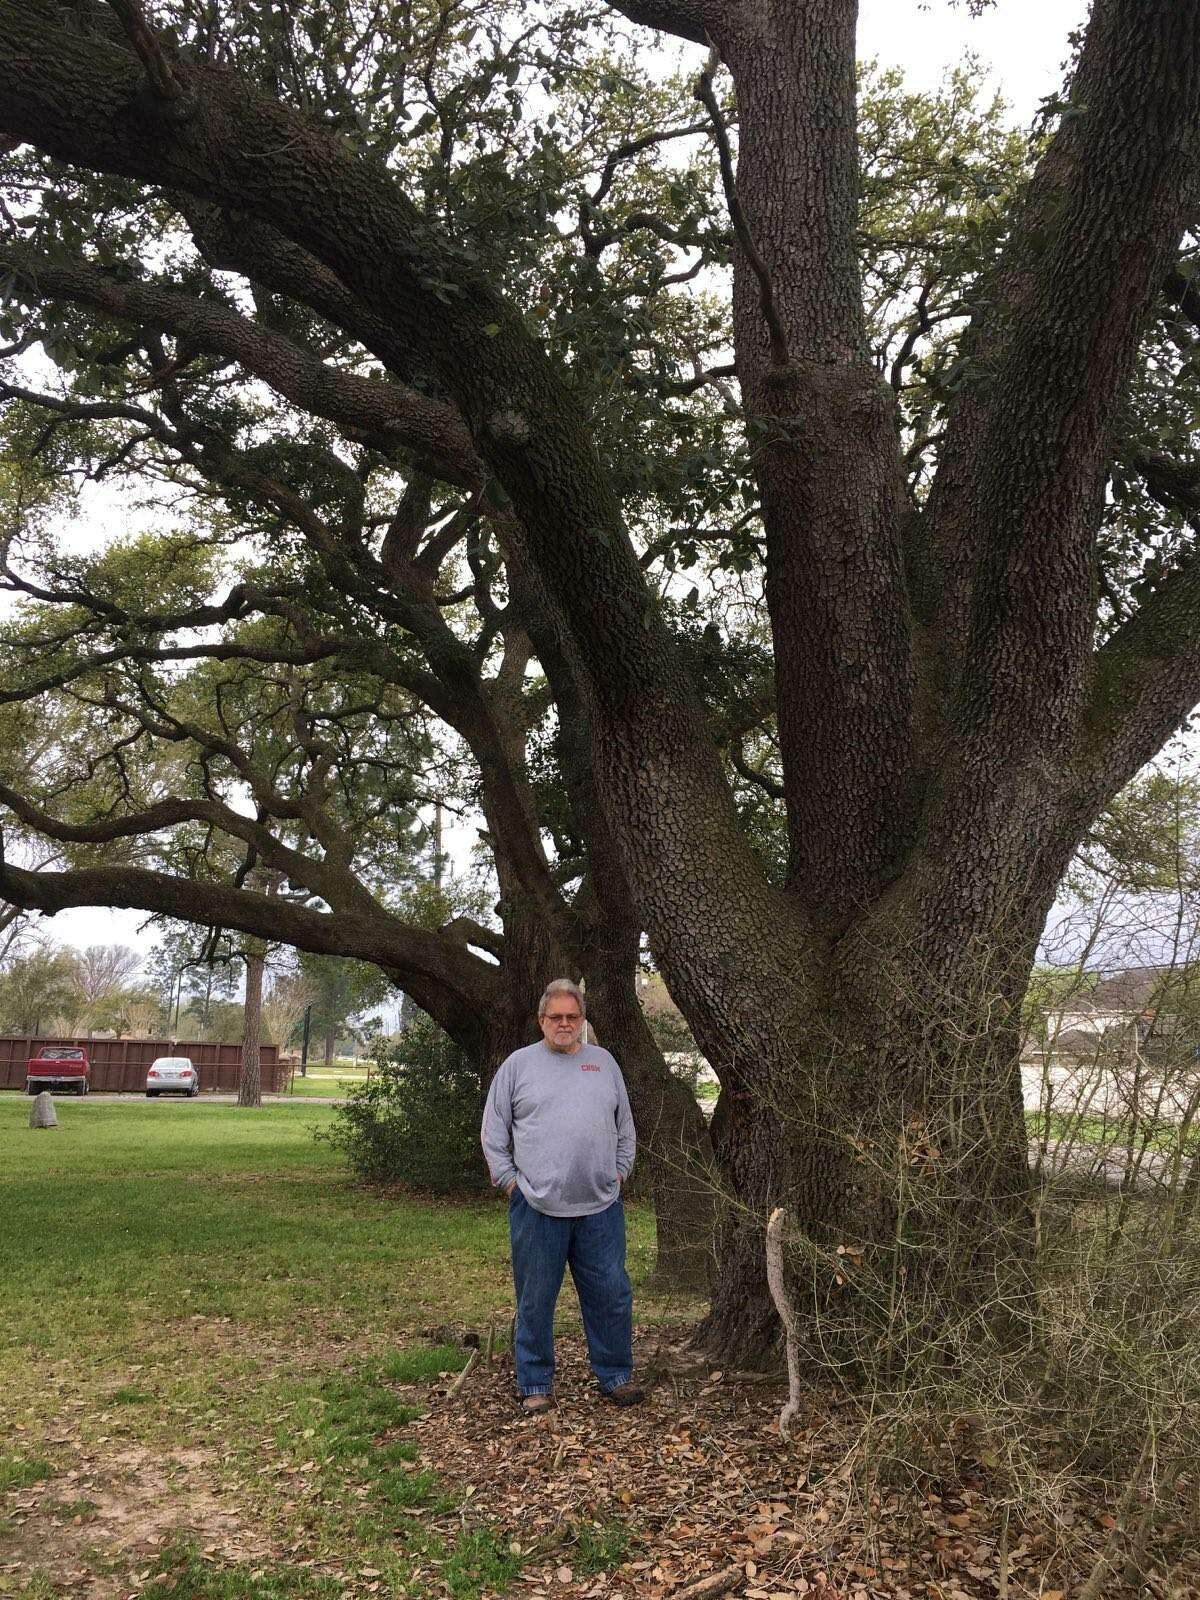 In March 2019, Robert Fontenot stands in front of Live oak trees that he said were planted in the early 1900s at the founding of the Roesner Homestead. His attempts to protect them from removal were unsuccessful. The North Fort Bend Water Authority went to court and successfully obtained a condemnation of a 20-foot wide section of his land at 24515 Roesner Road in which to place a water line.